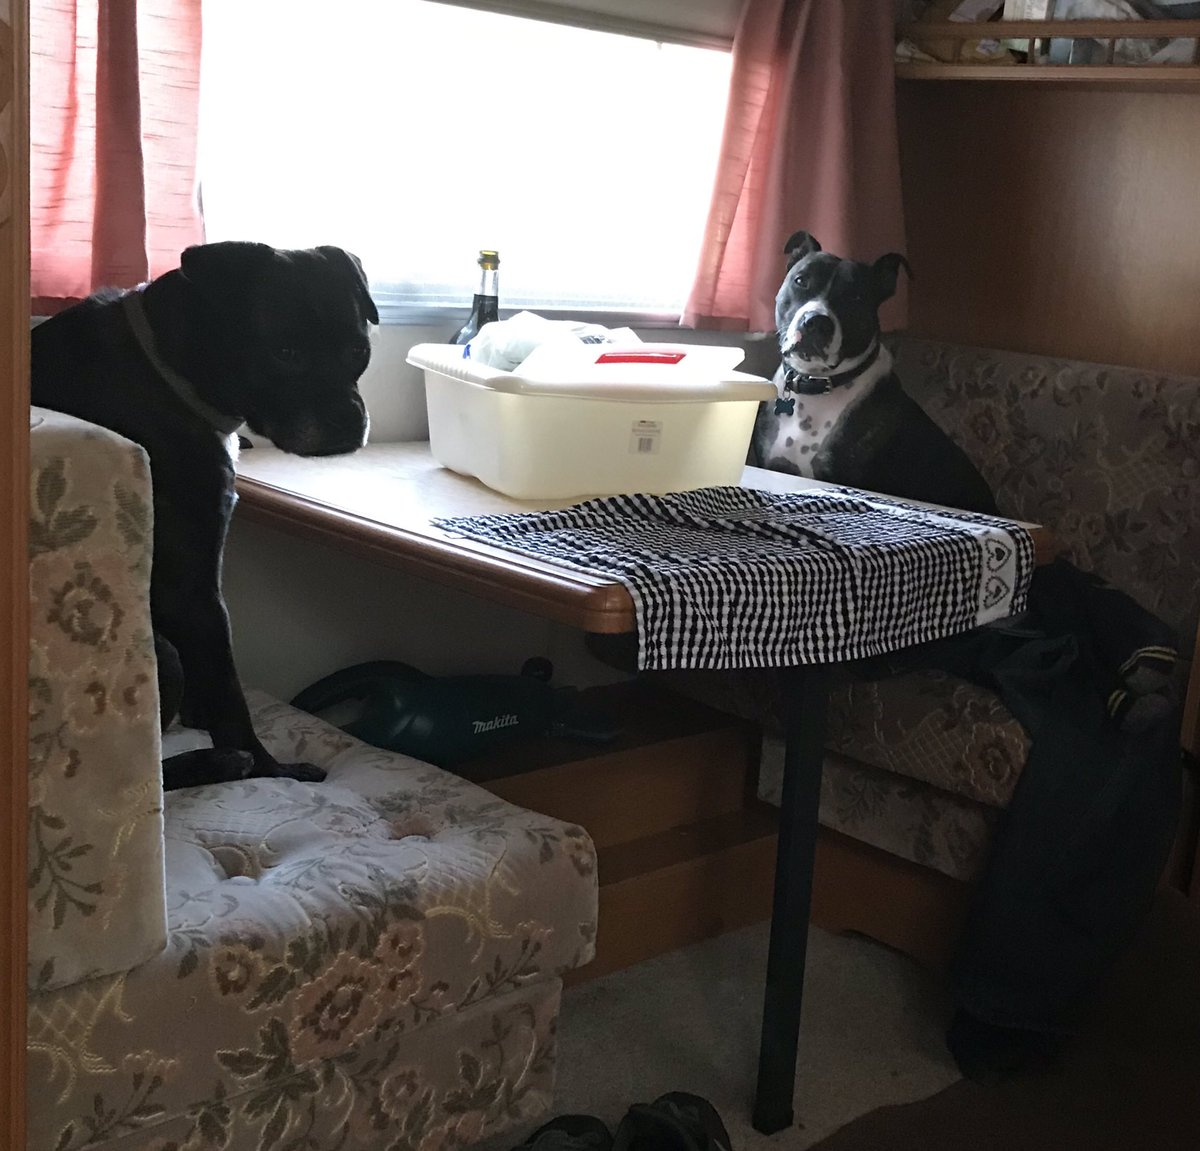 Waiting for breakfast  #AdoptDontShop #rescues<br>http://pic.twitter.com/SIf1gJS75o